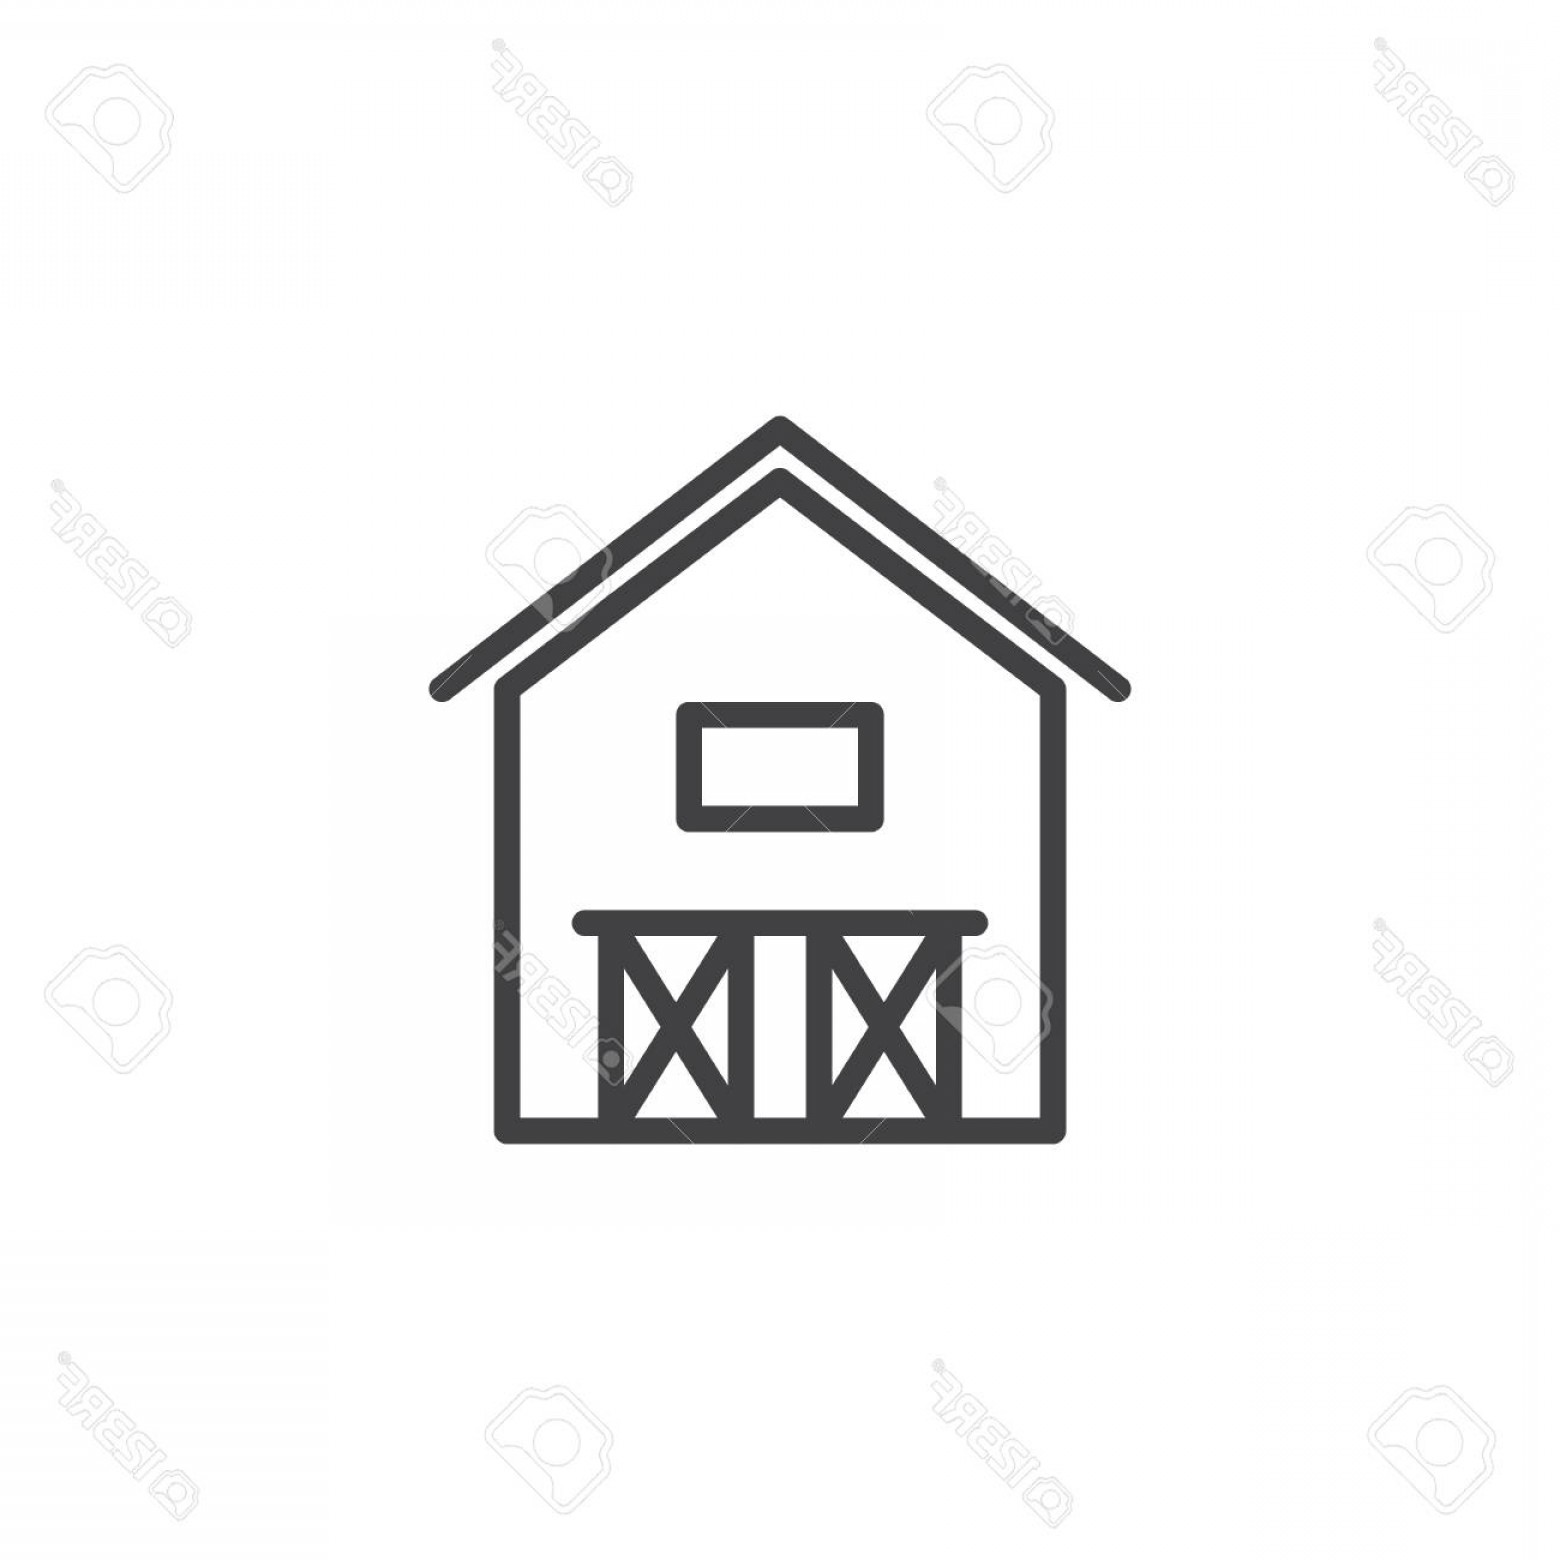 Barn Outline Vector: Photostock Vector Barn House Line Icon Outline Vector Sign Linear Style Pictogram Isolated On White Hangar Symbol Logo